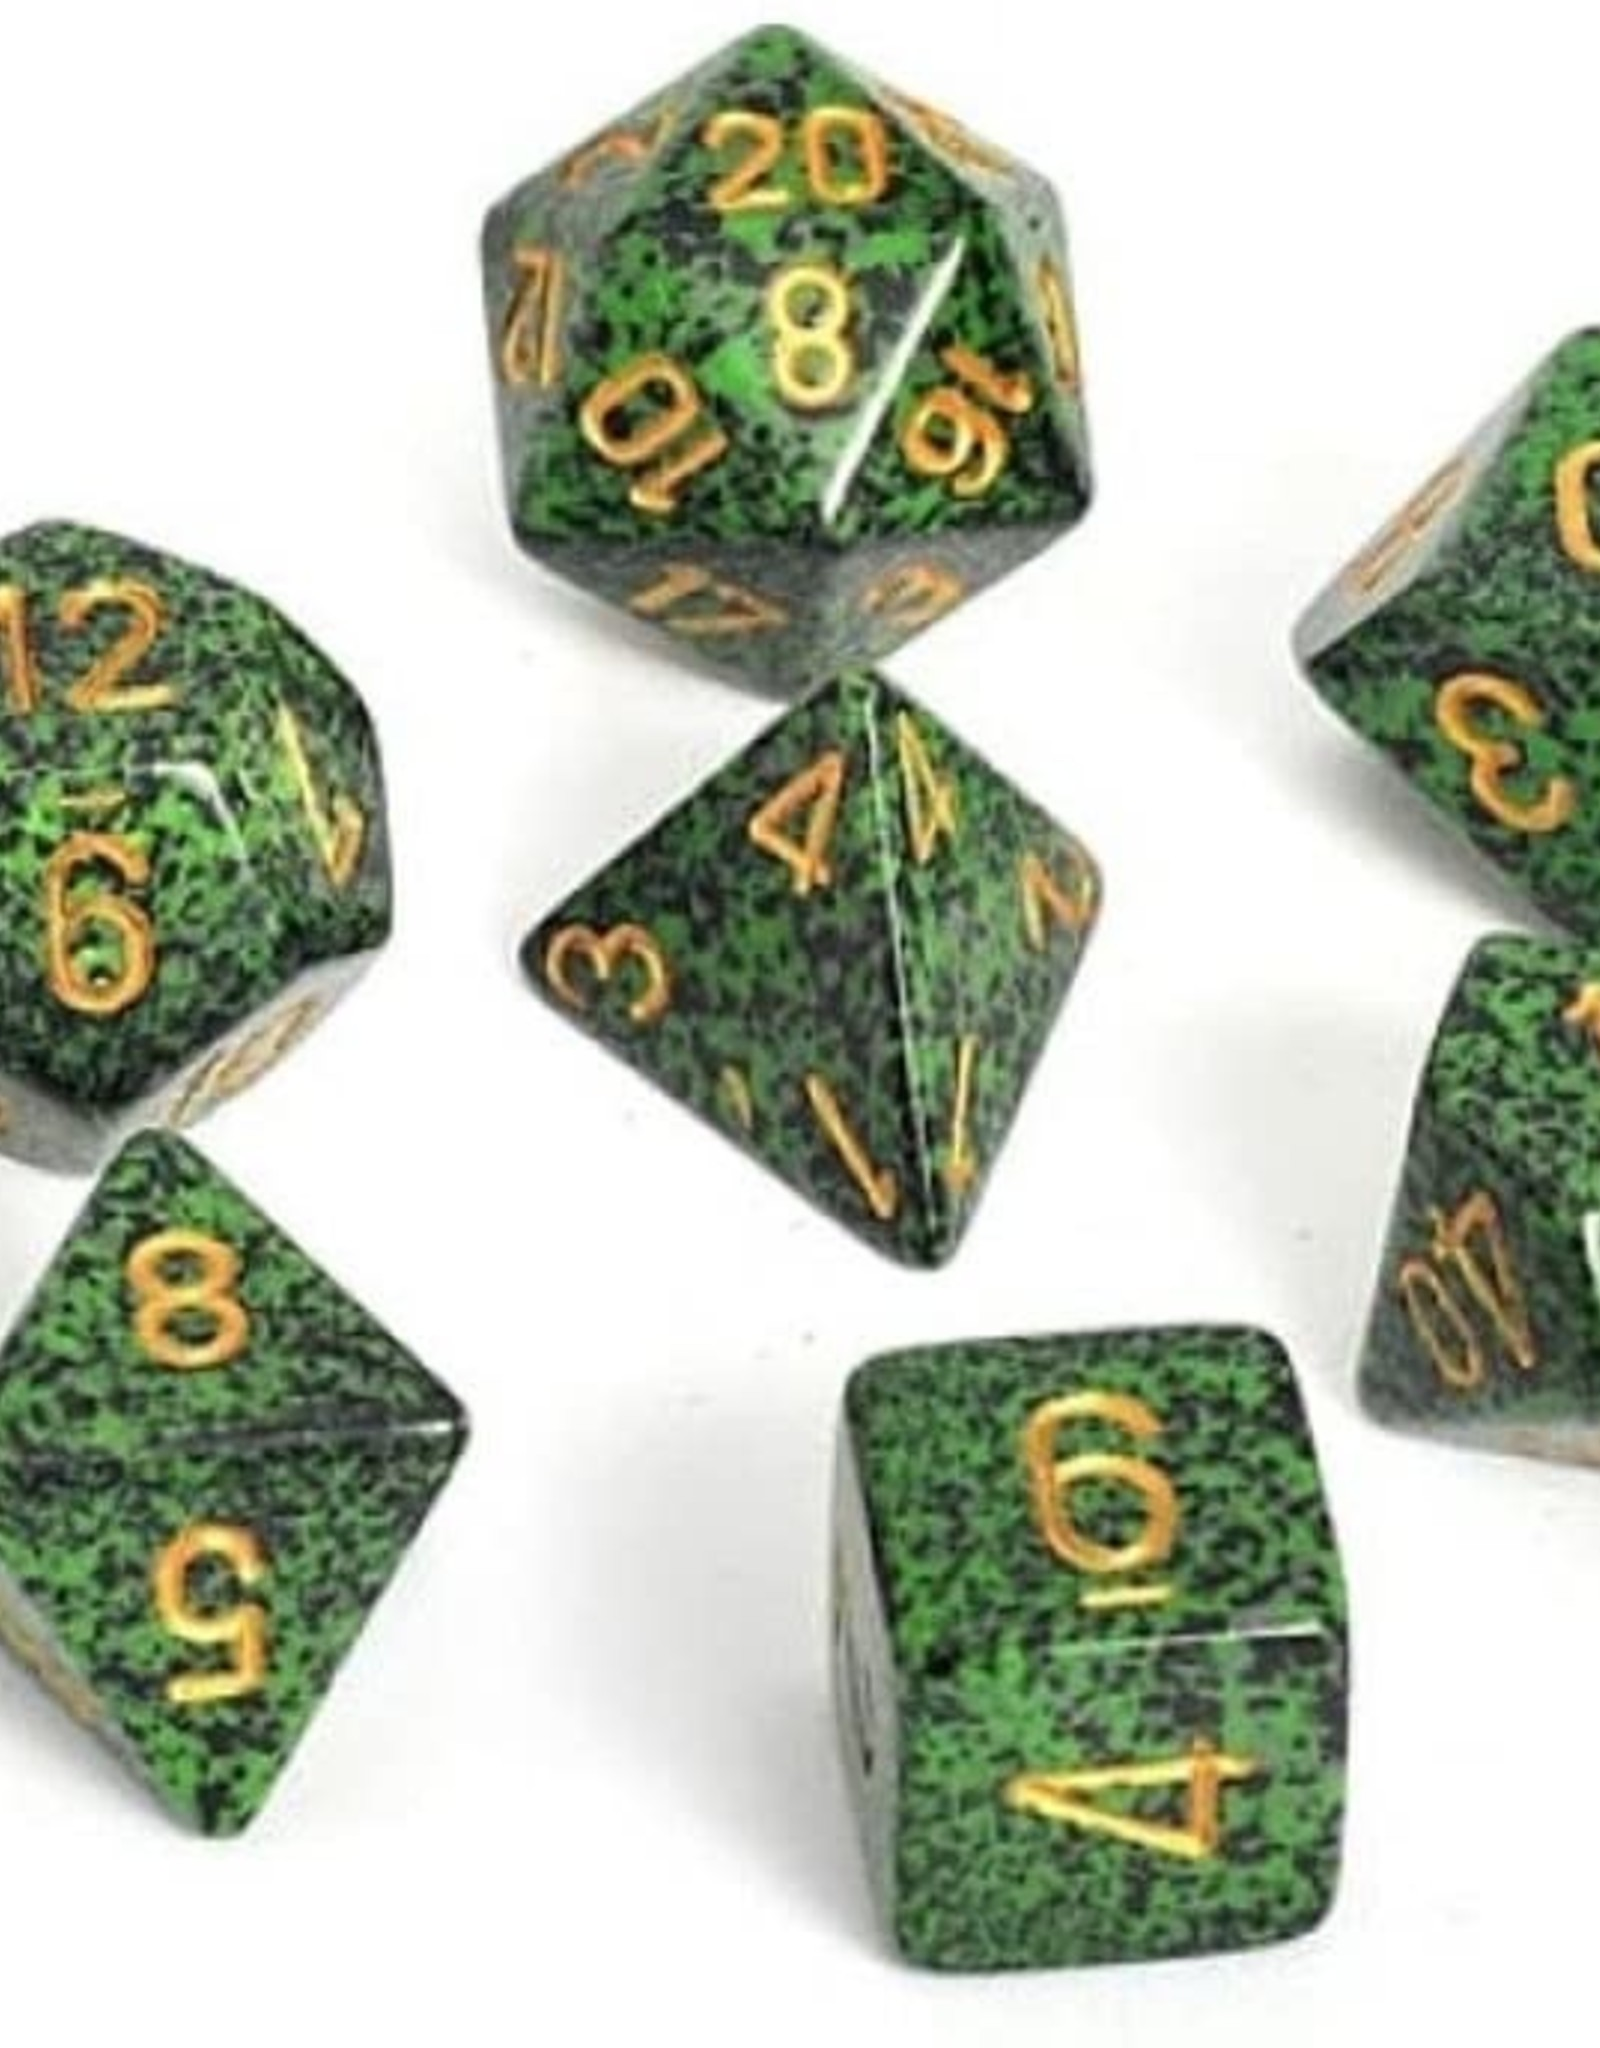 Chessex Chessex CHX25335 Dice-Speckled Golden Recon Set, One Size, Multicolor